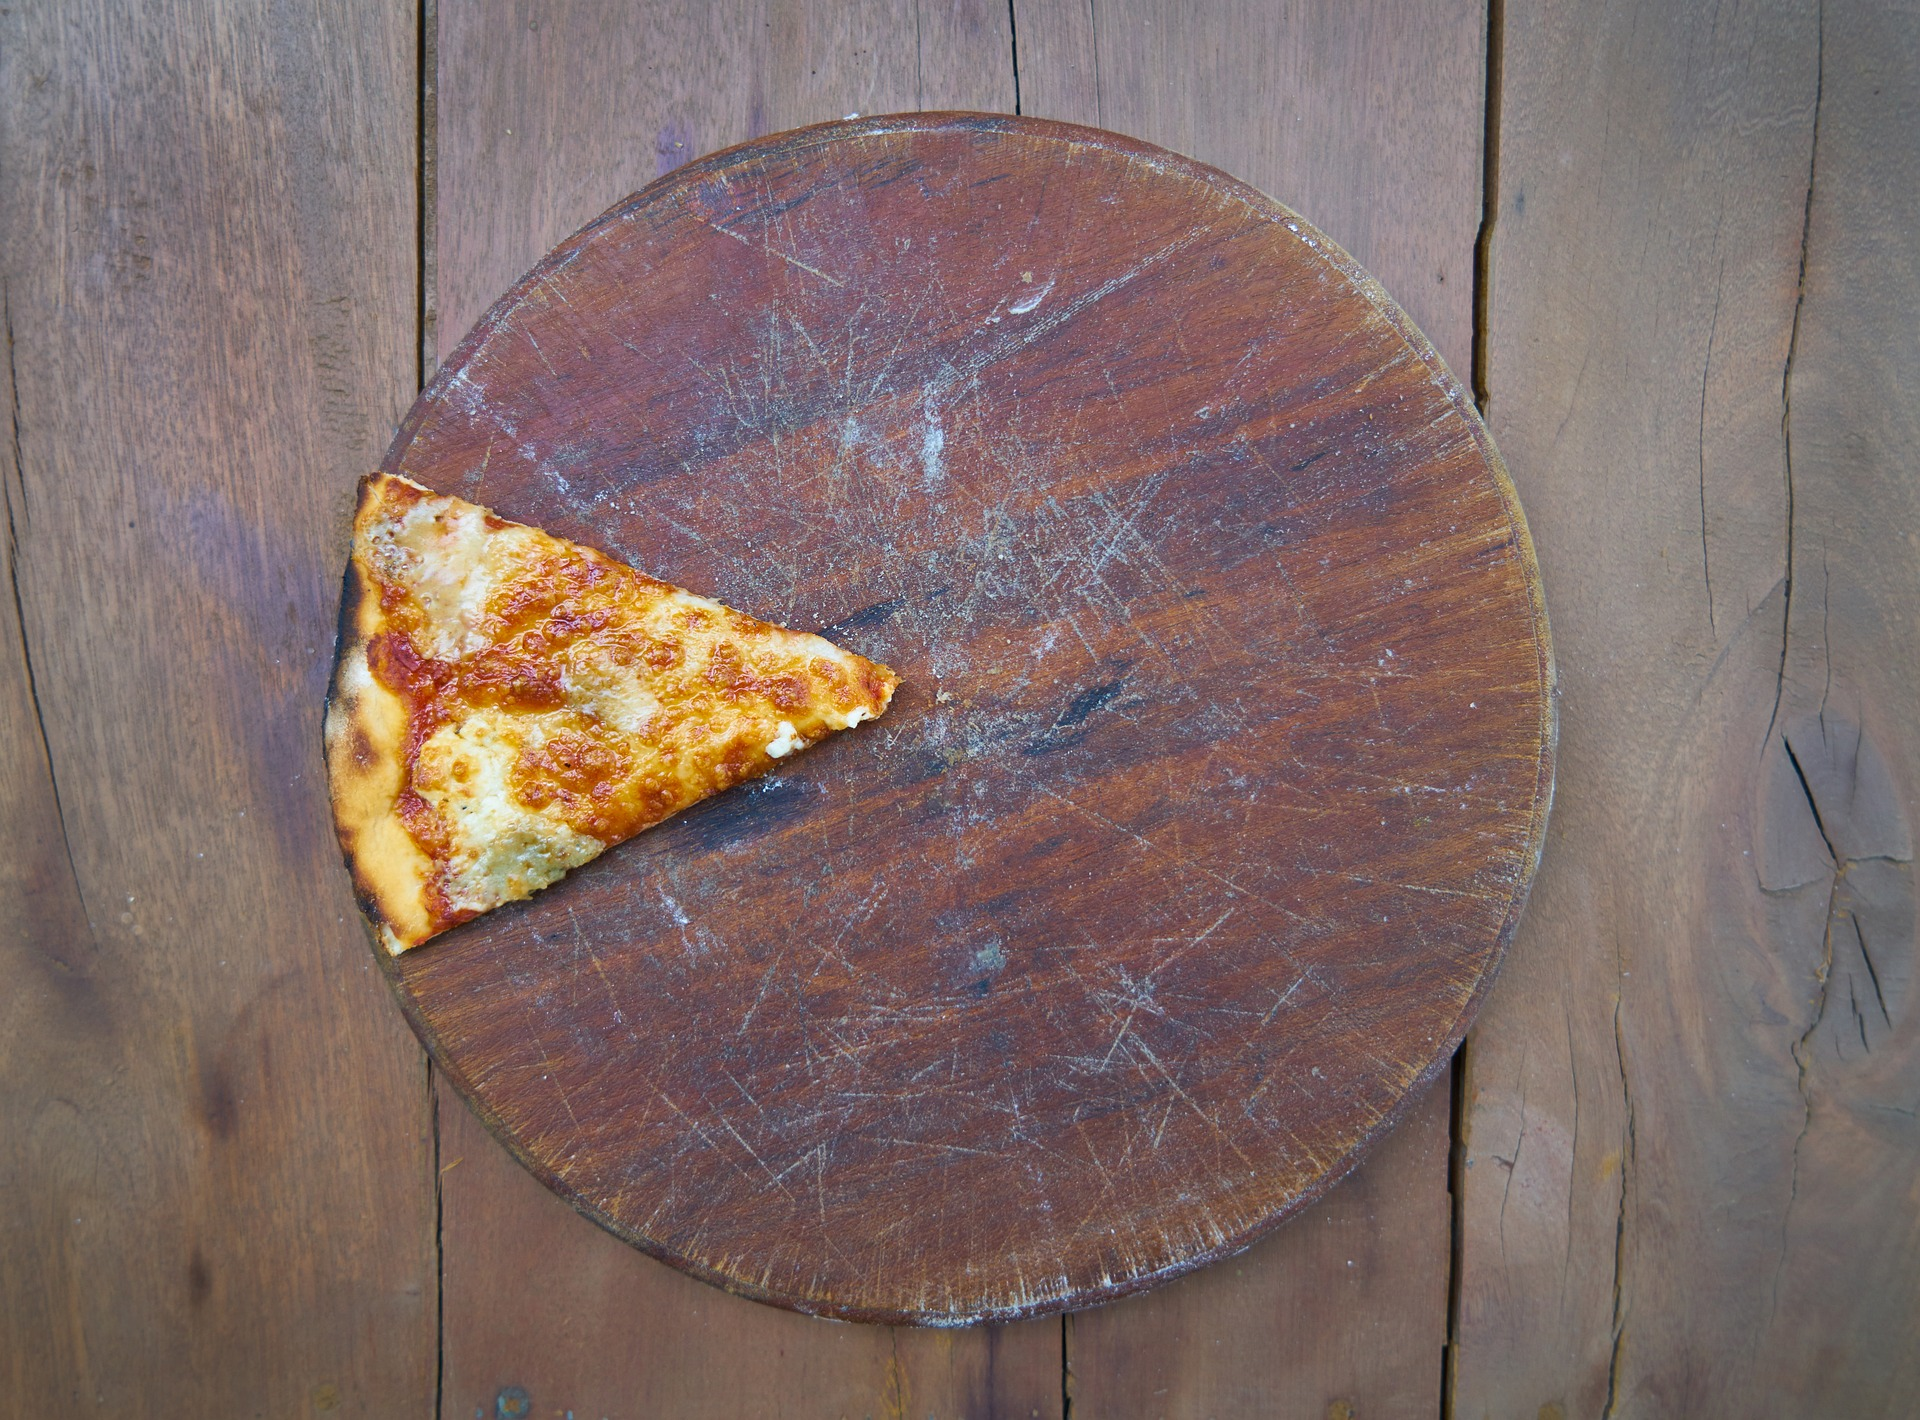 Say no to pineapple on pizza